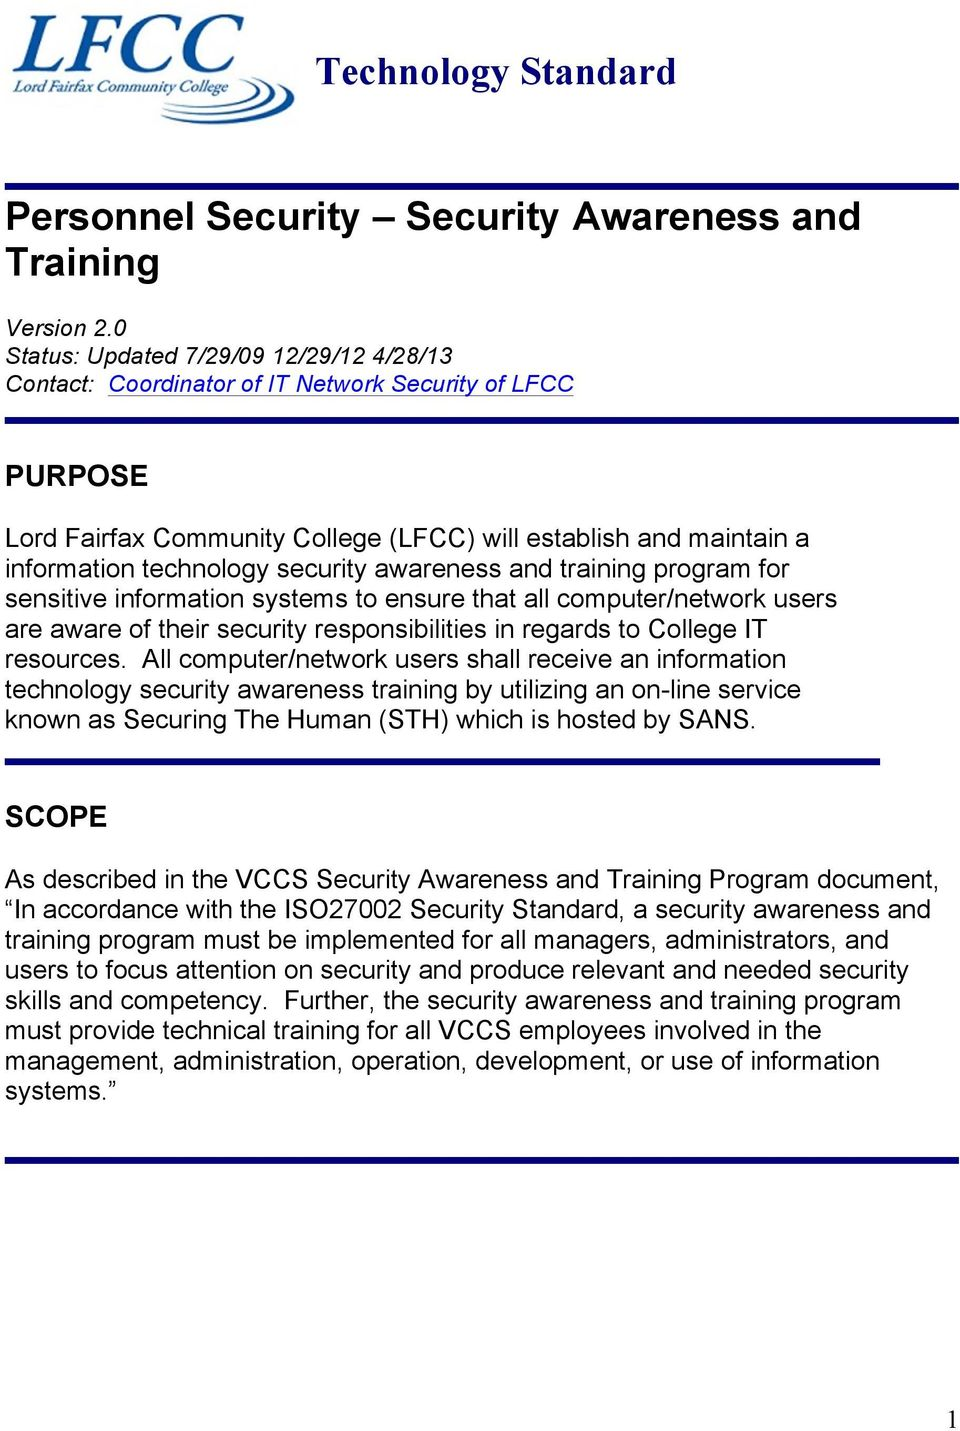 security awareness and training program for sensitive information systems to ensure that all computer/network users are aware of their security responsibilities in regards to College IT resources.